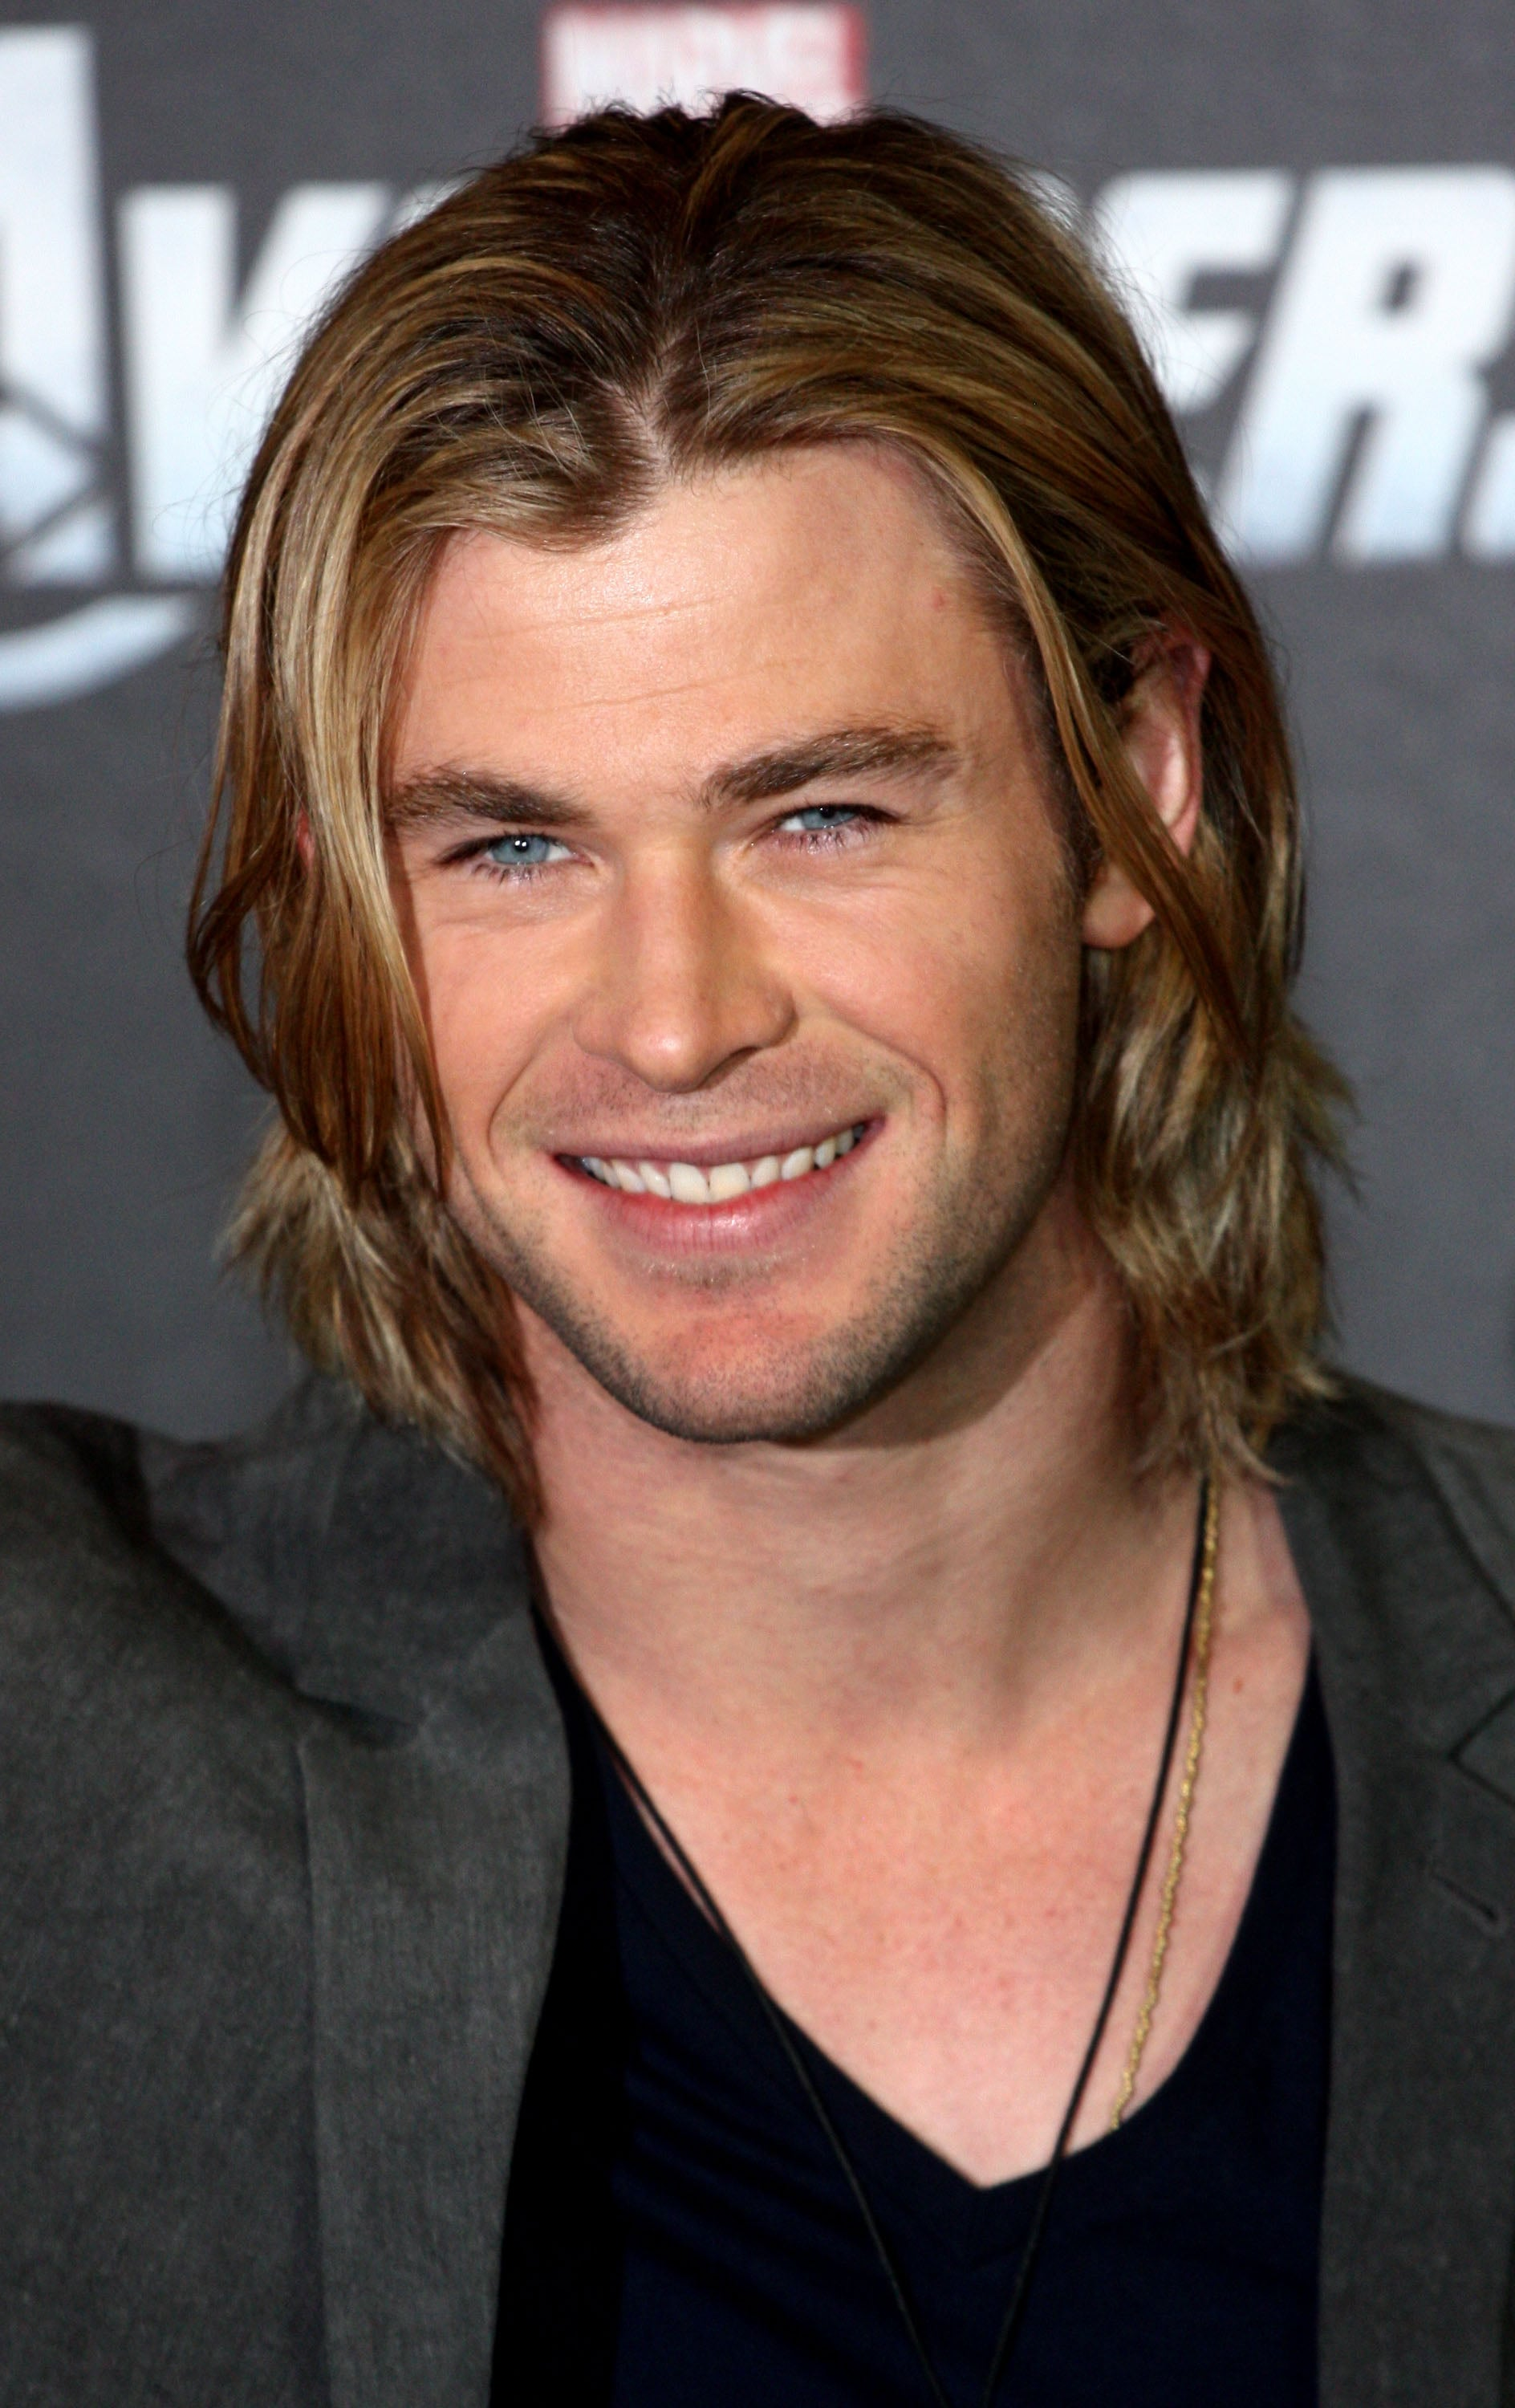 Chris Hemsworth 15 Hot Celebrity Guys Who Make The Man Bob